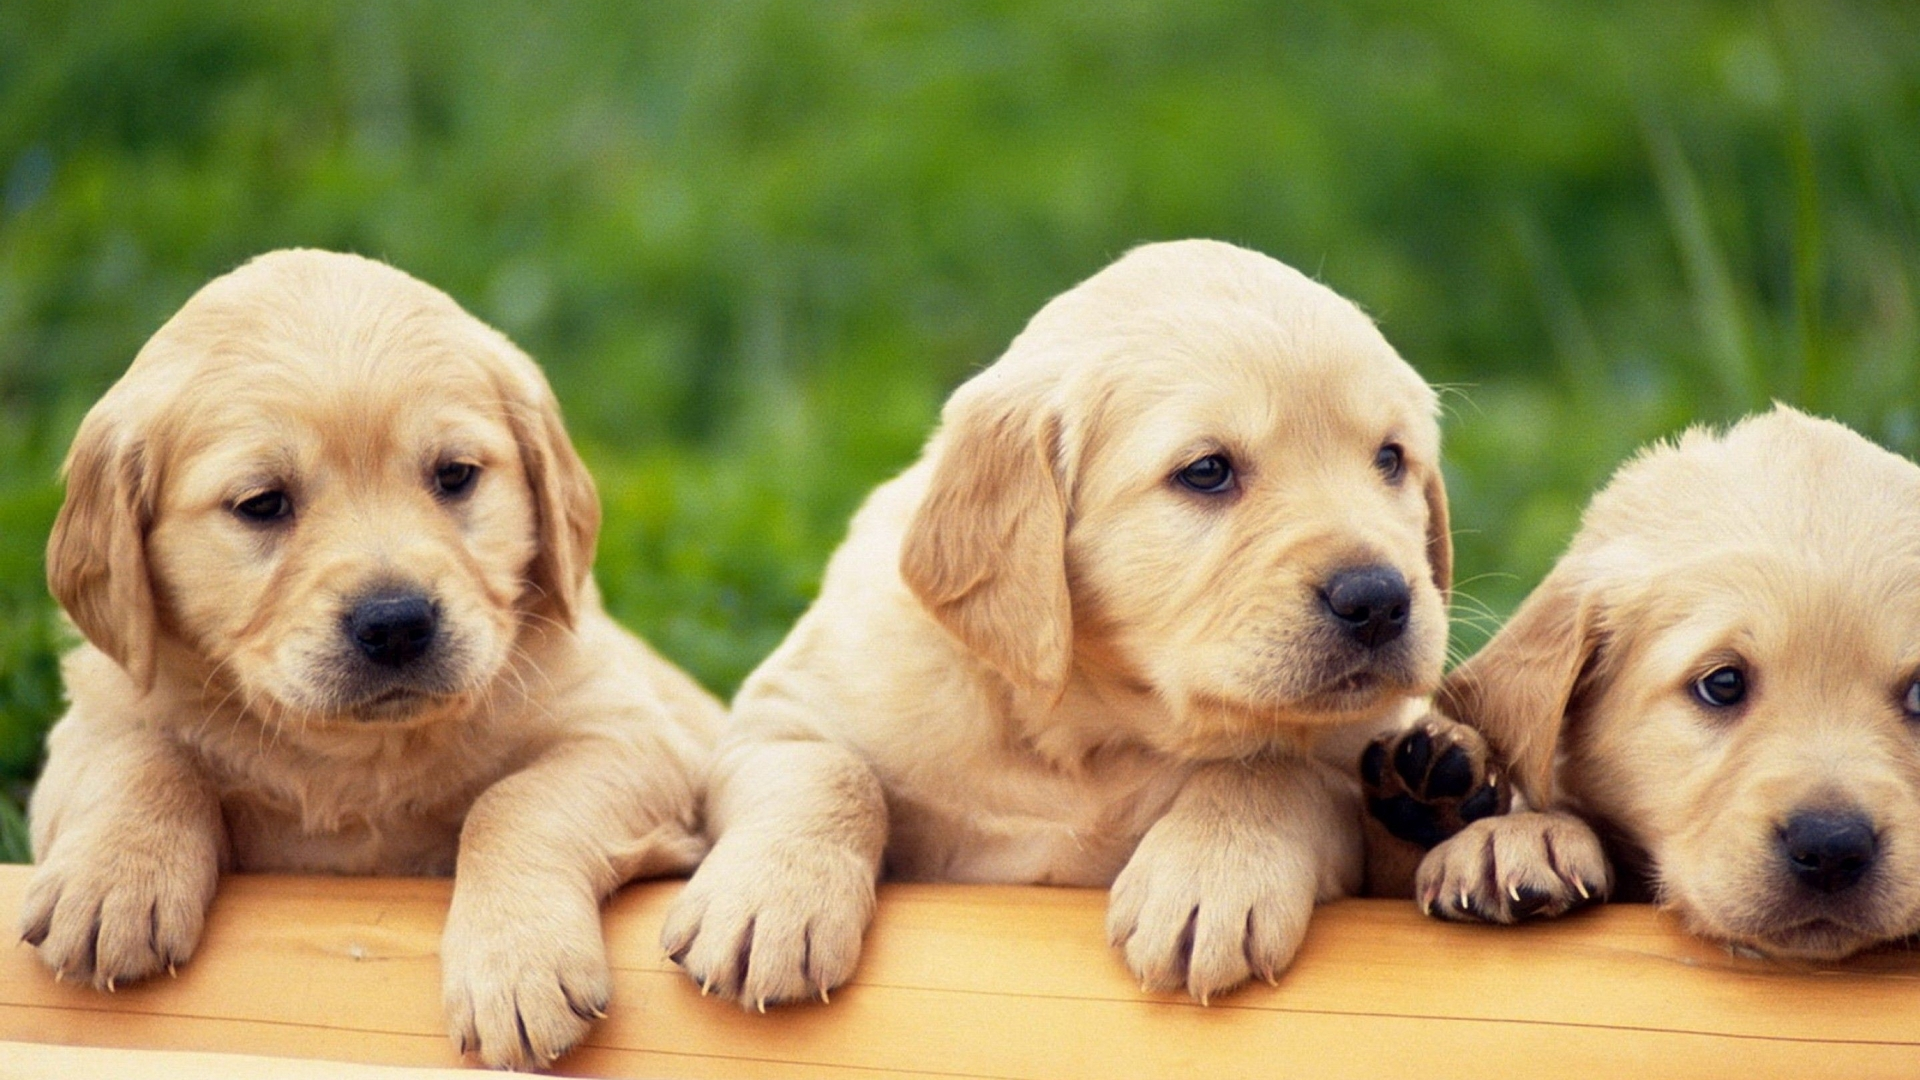 Golden Retriever Puppies Wallpaper High Definition High Quality